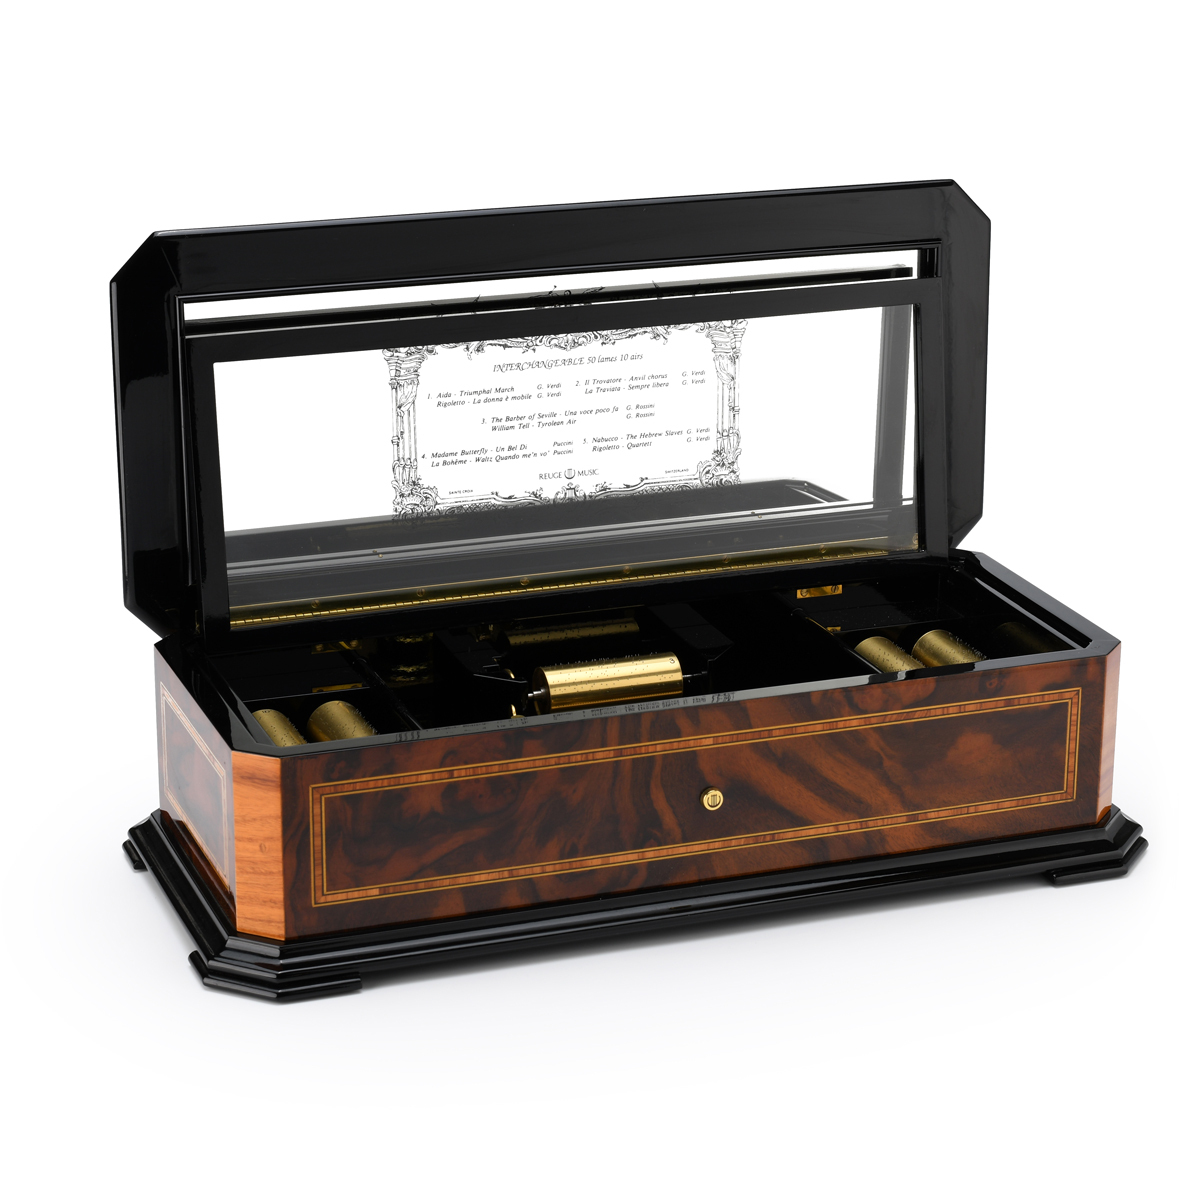 Elegant Handcrafted REUGE 50 Note Interchangeable Cylinder Grand Music Box